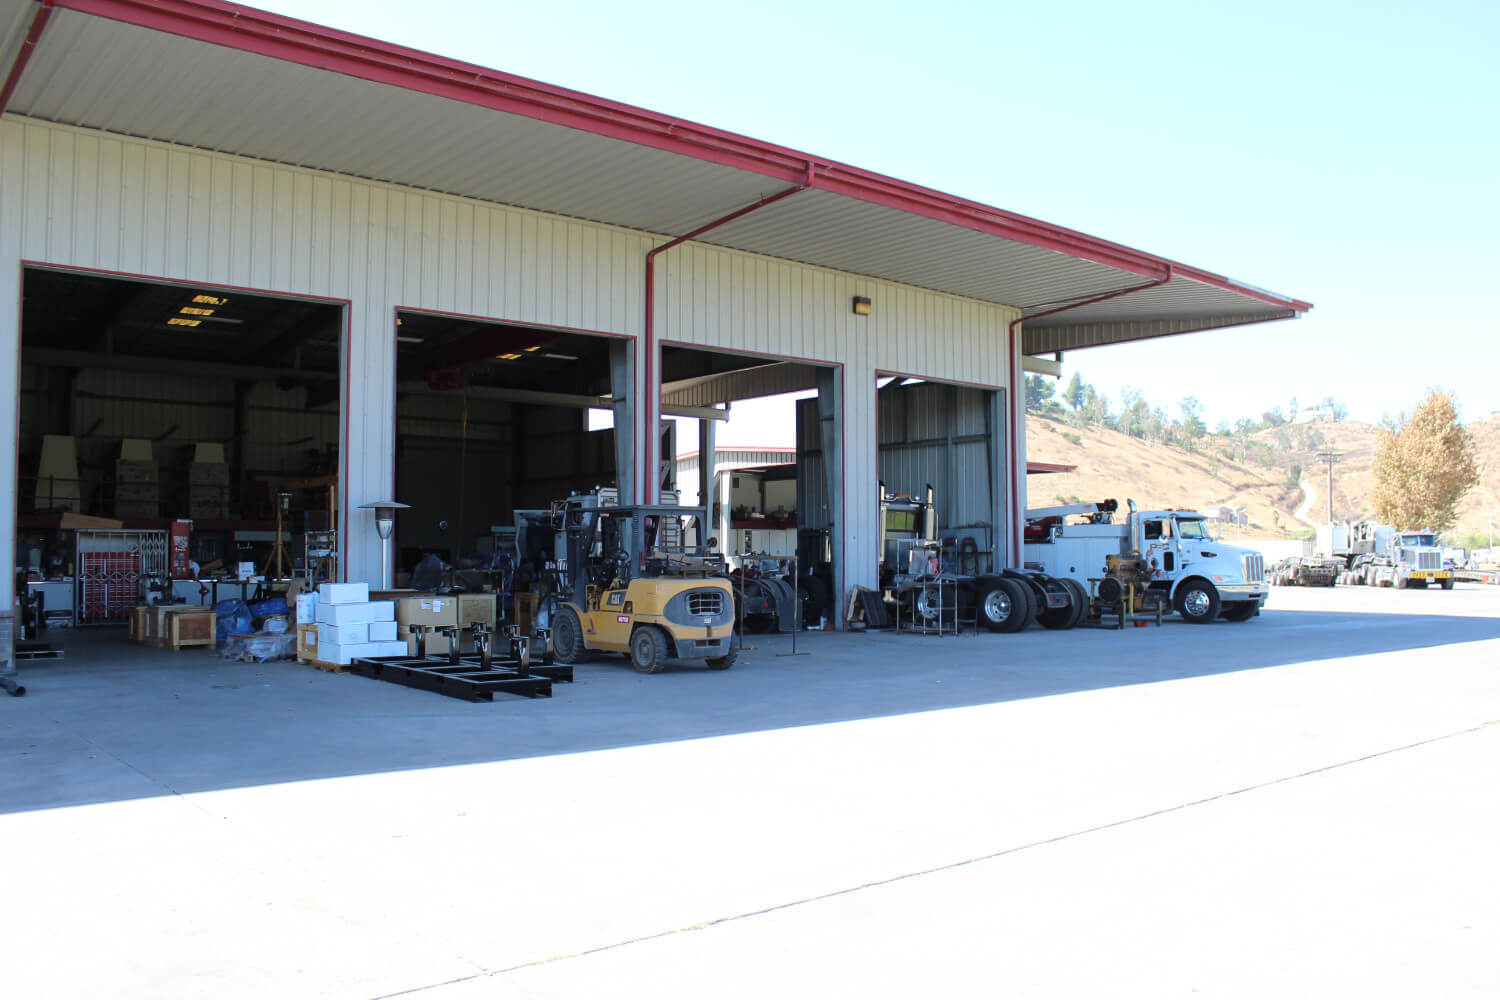 Truck Repair & Fabrication Shop